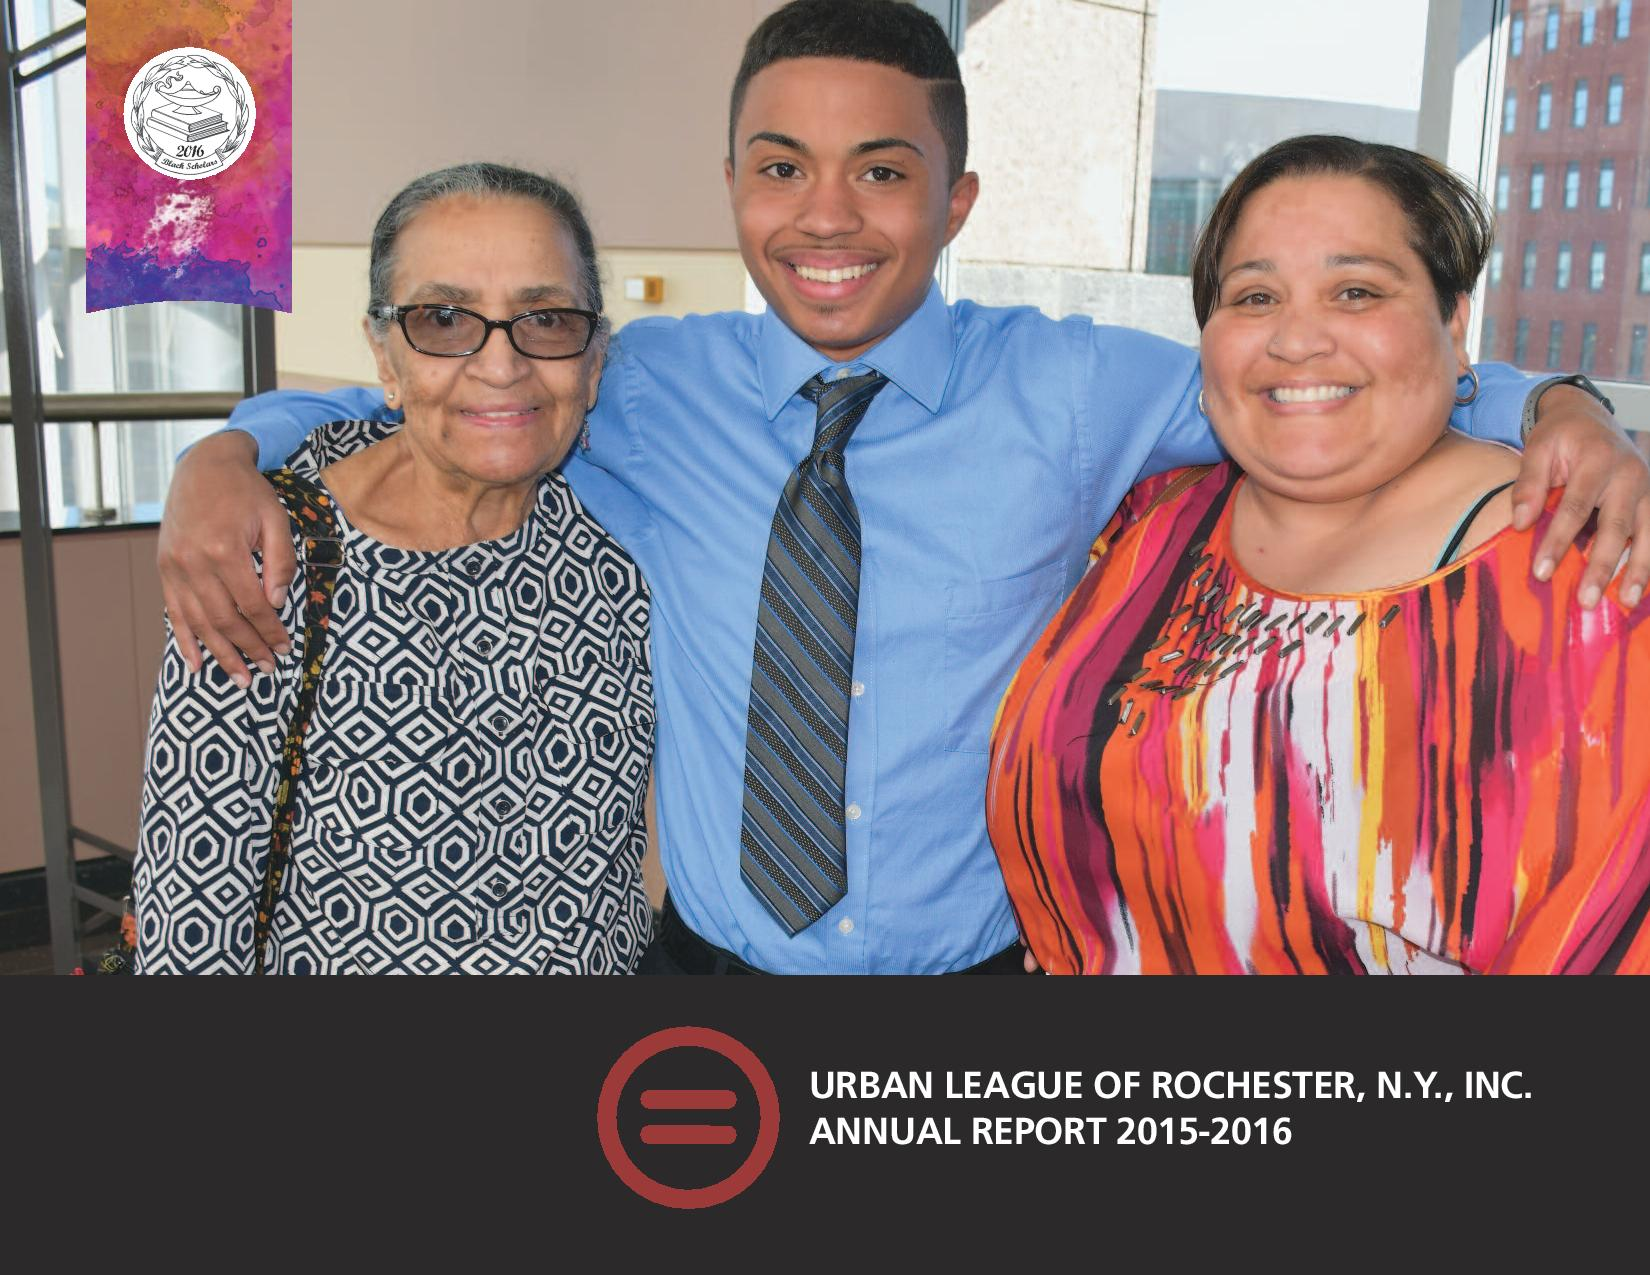 2015-2016 ULR Annual Report